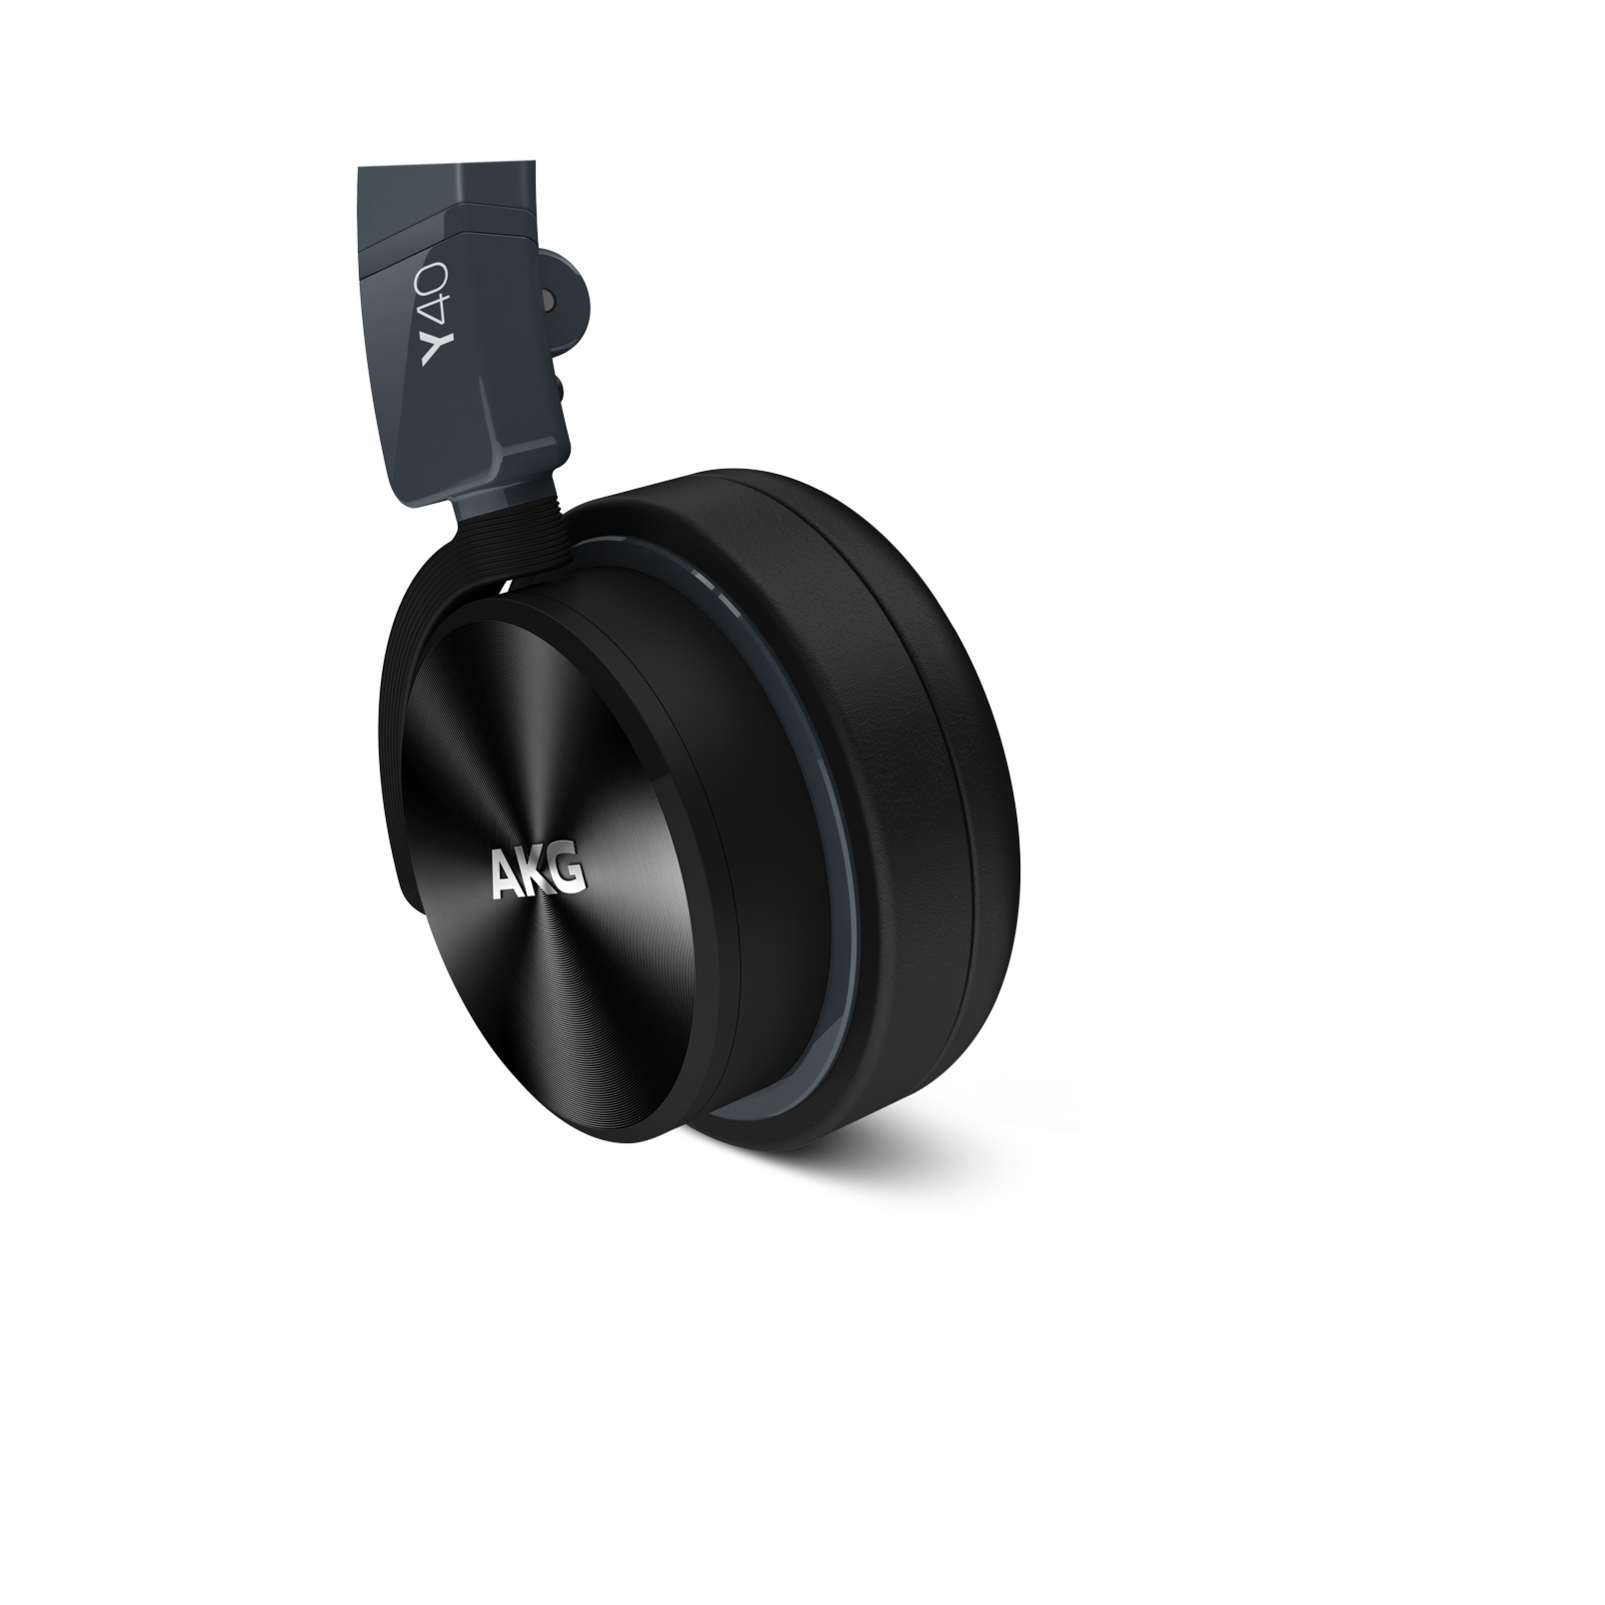 Y40 - Black - High-performance foldable headphones with universal in-line microphone and remote - Detailshot 1